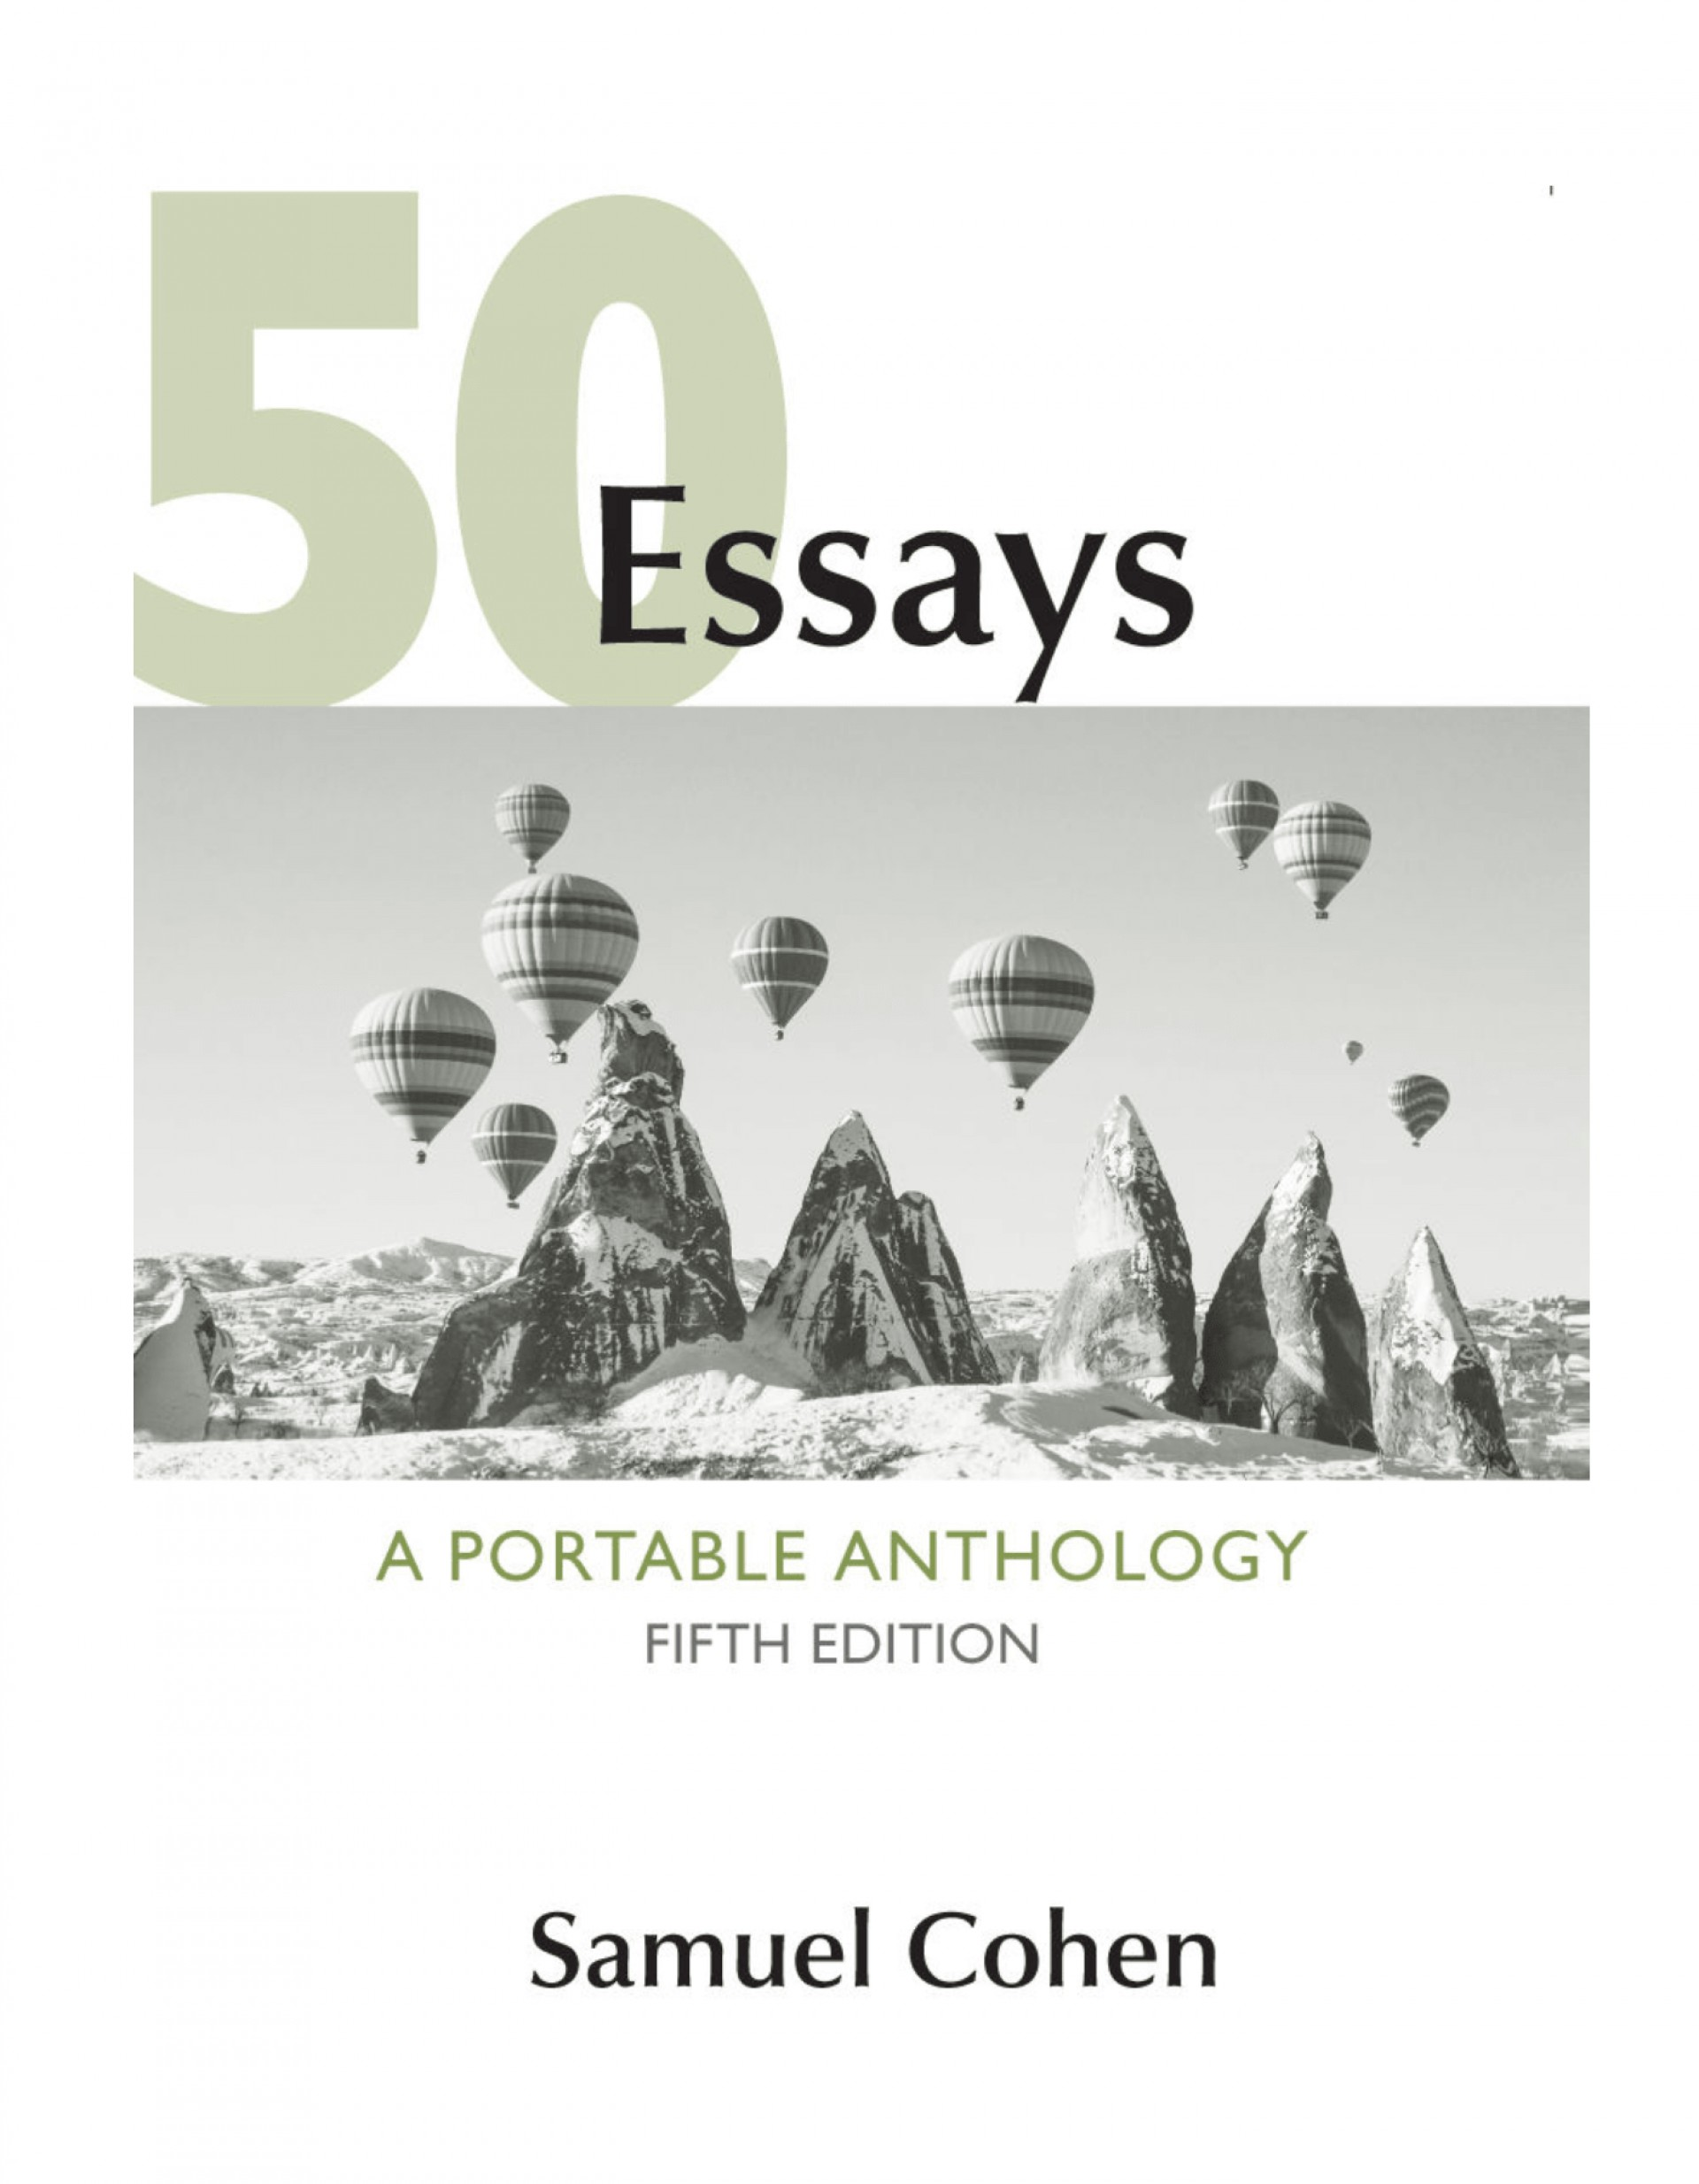 006 Essays Portable Anthology 5th Edition Essay Example Top 50 A Answer Key Table Of Contents Summary 1920